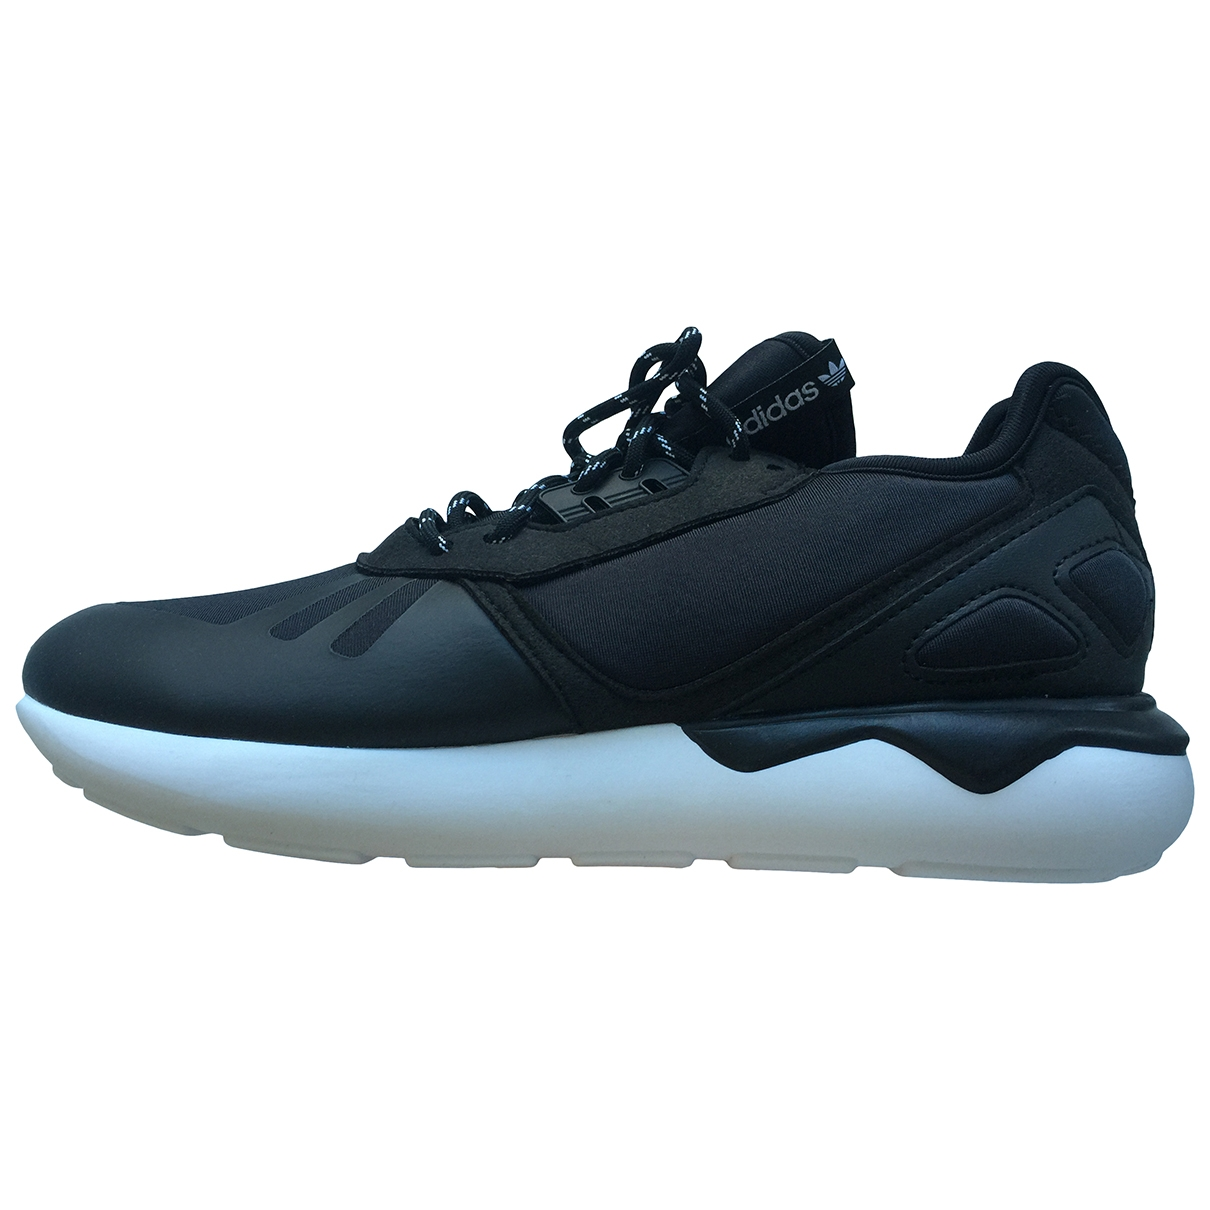 Adidas Tubular Black Trainers for Women 5 UK